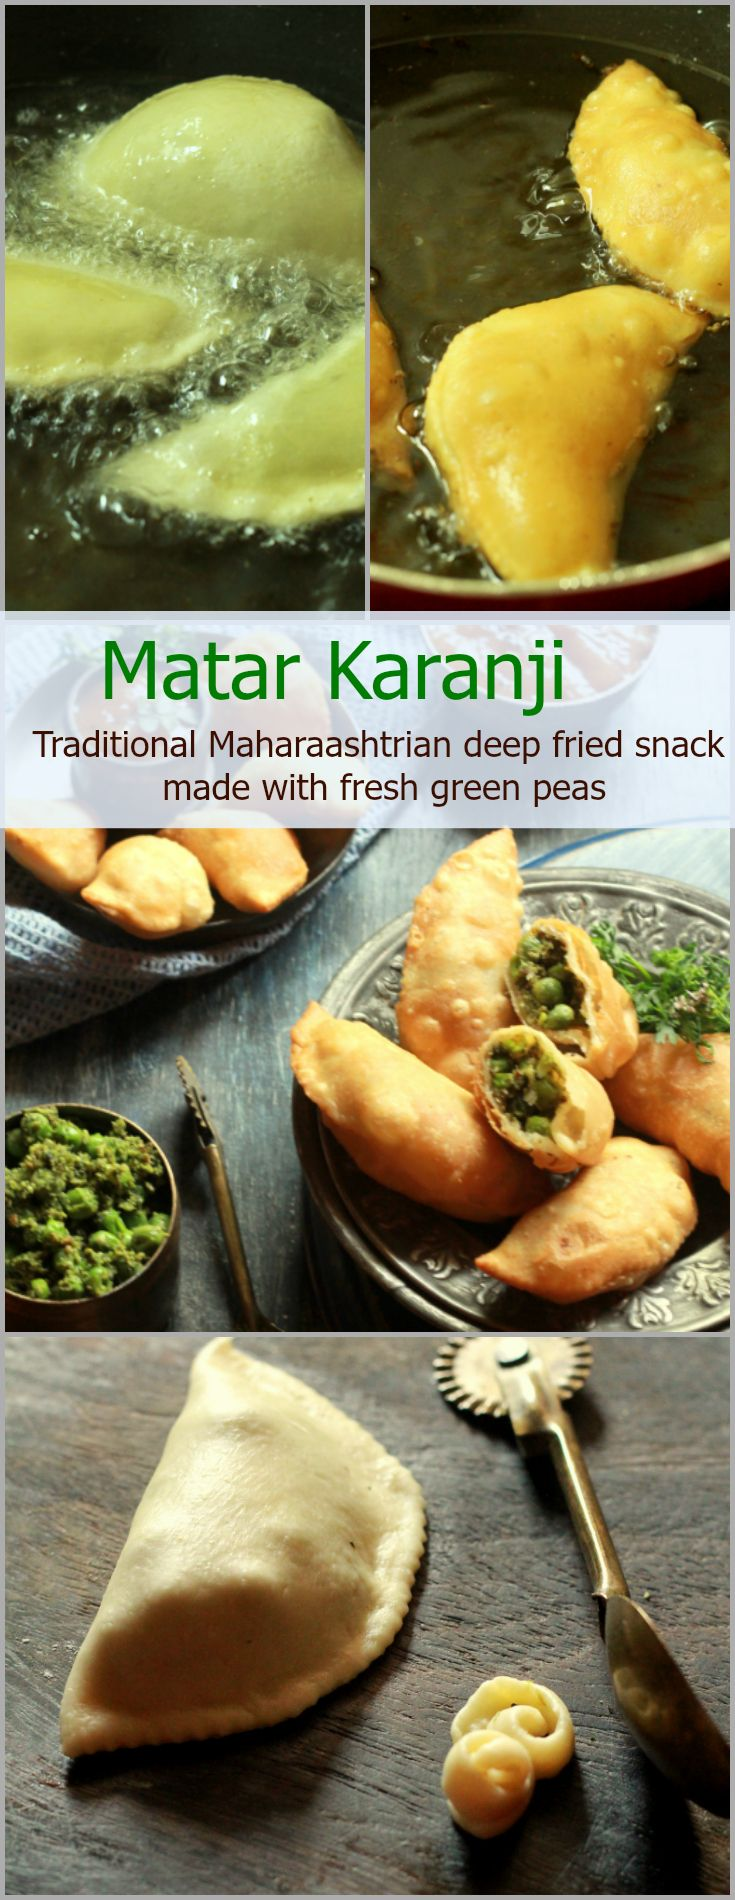 Indulgent Maharashtrian snack made using seasonal fresh green peas. Green peas and fresh coconut along with a few other spices are stuffed in a crisp flour pastry/cover and then deep fried till golden brown.